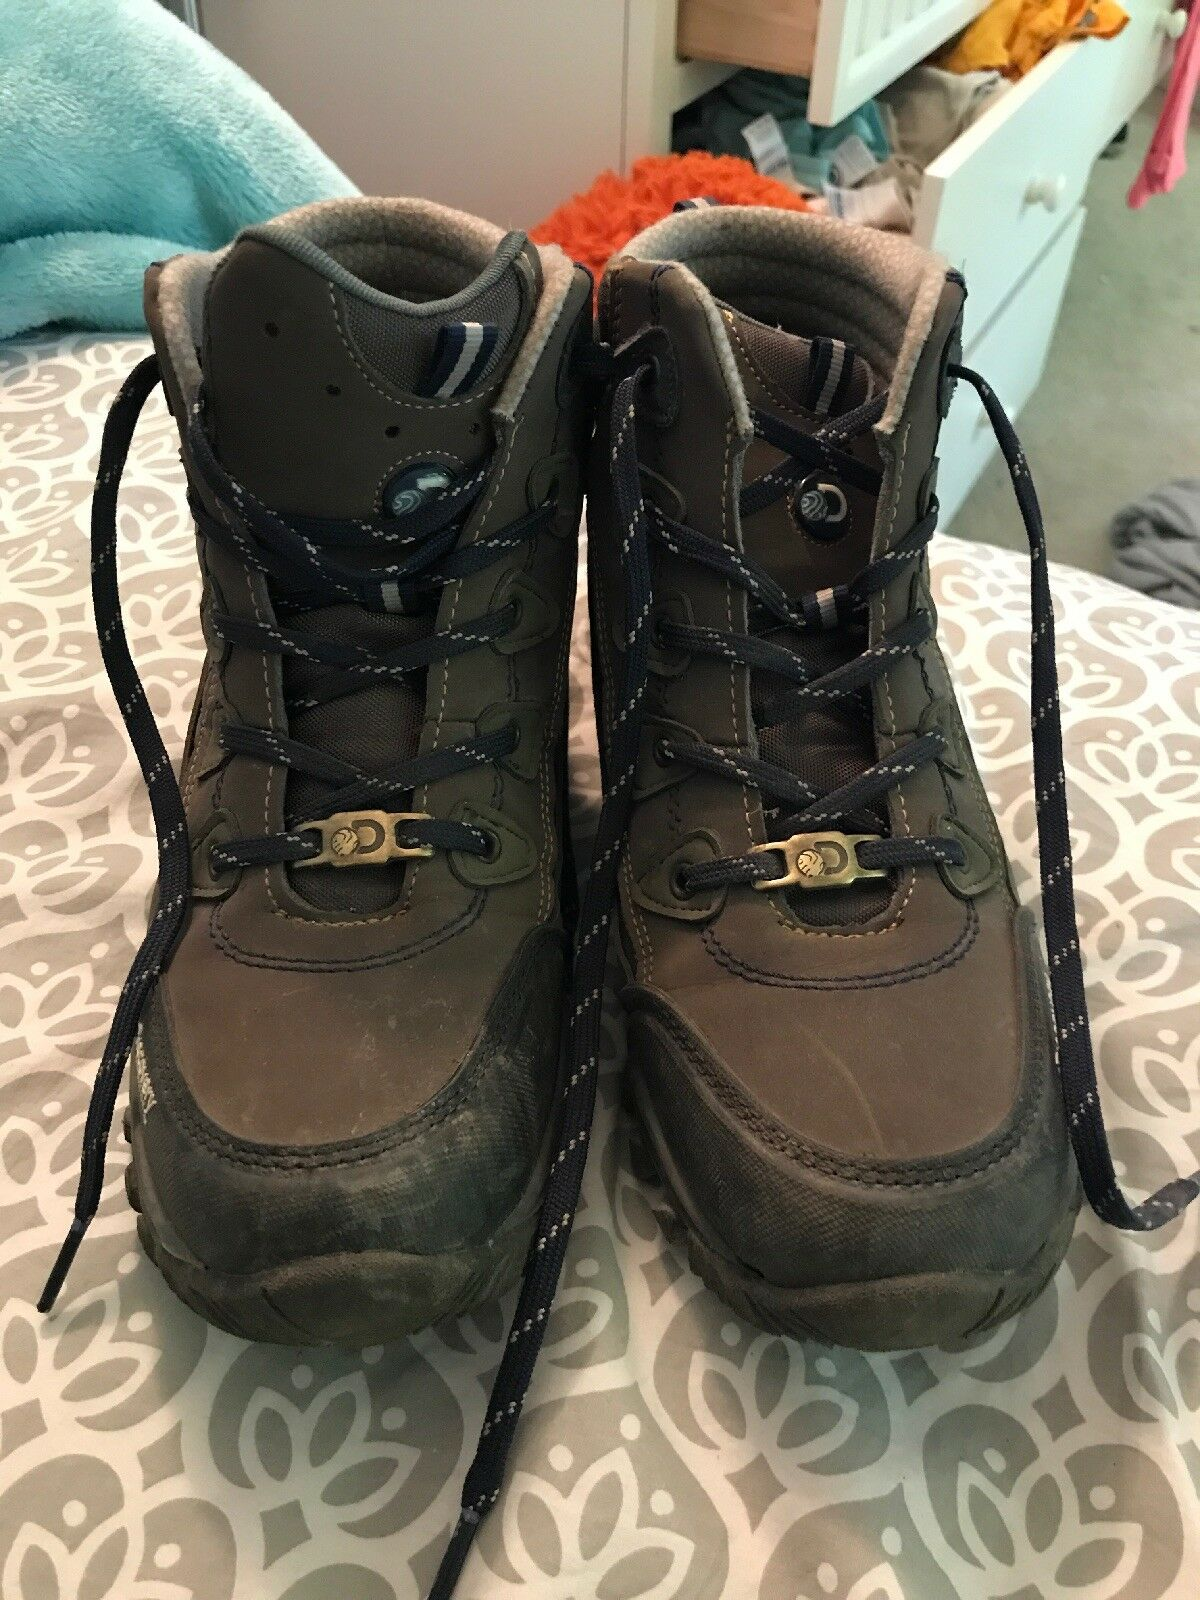 Discovery Expedition Womens Hiking shoes